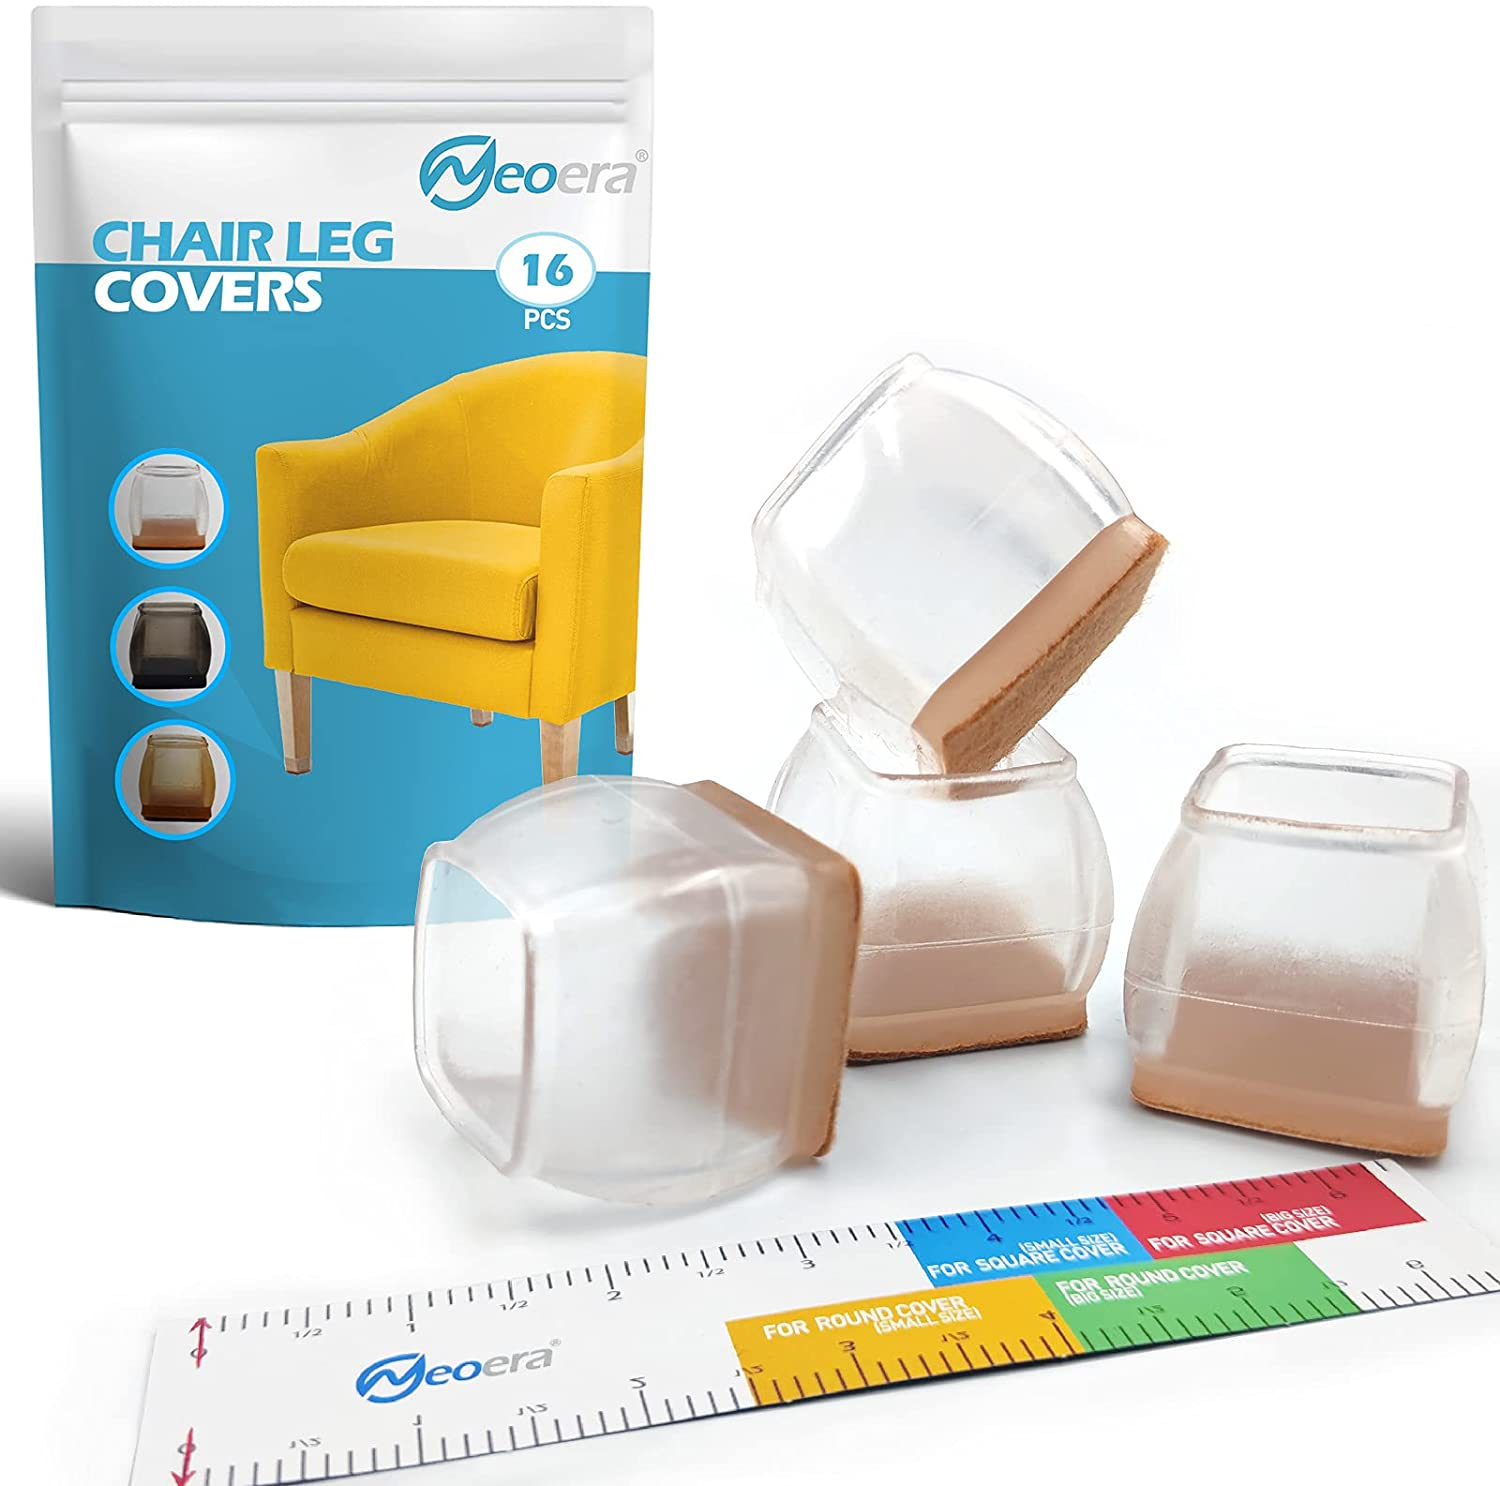 Neoera Chair Leg Covers to Protect Floors (Square Large Clear 16 Pcs) with Felt Transparency Silicone Furniture Feet Protector Pads, Stool Leg caps to Prevent Hardwood Floor Scratches and Reduce Noise